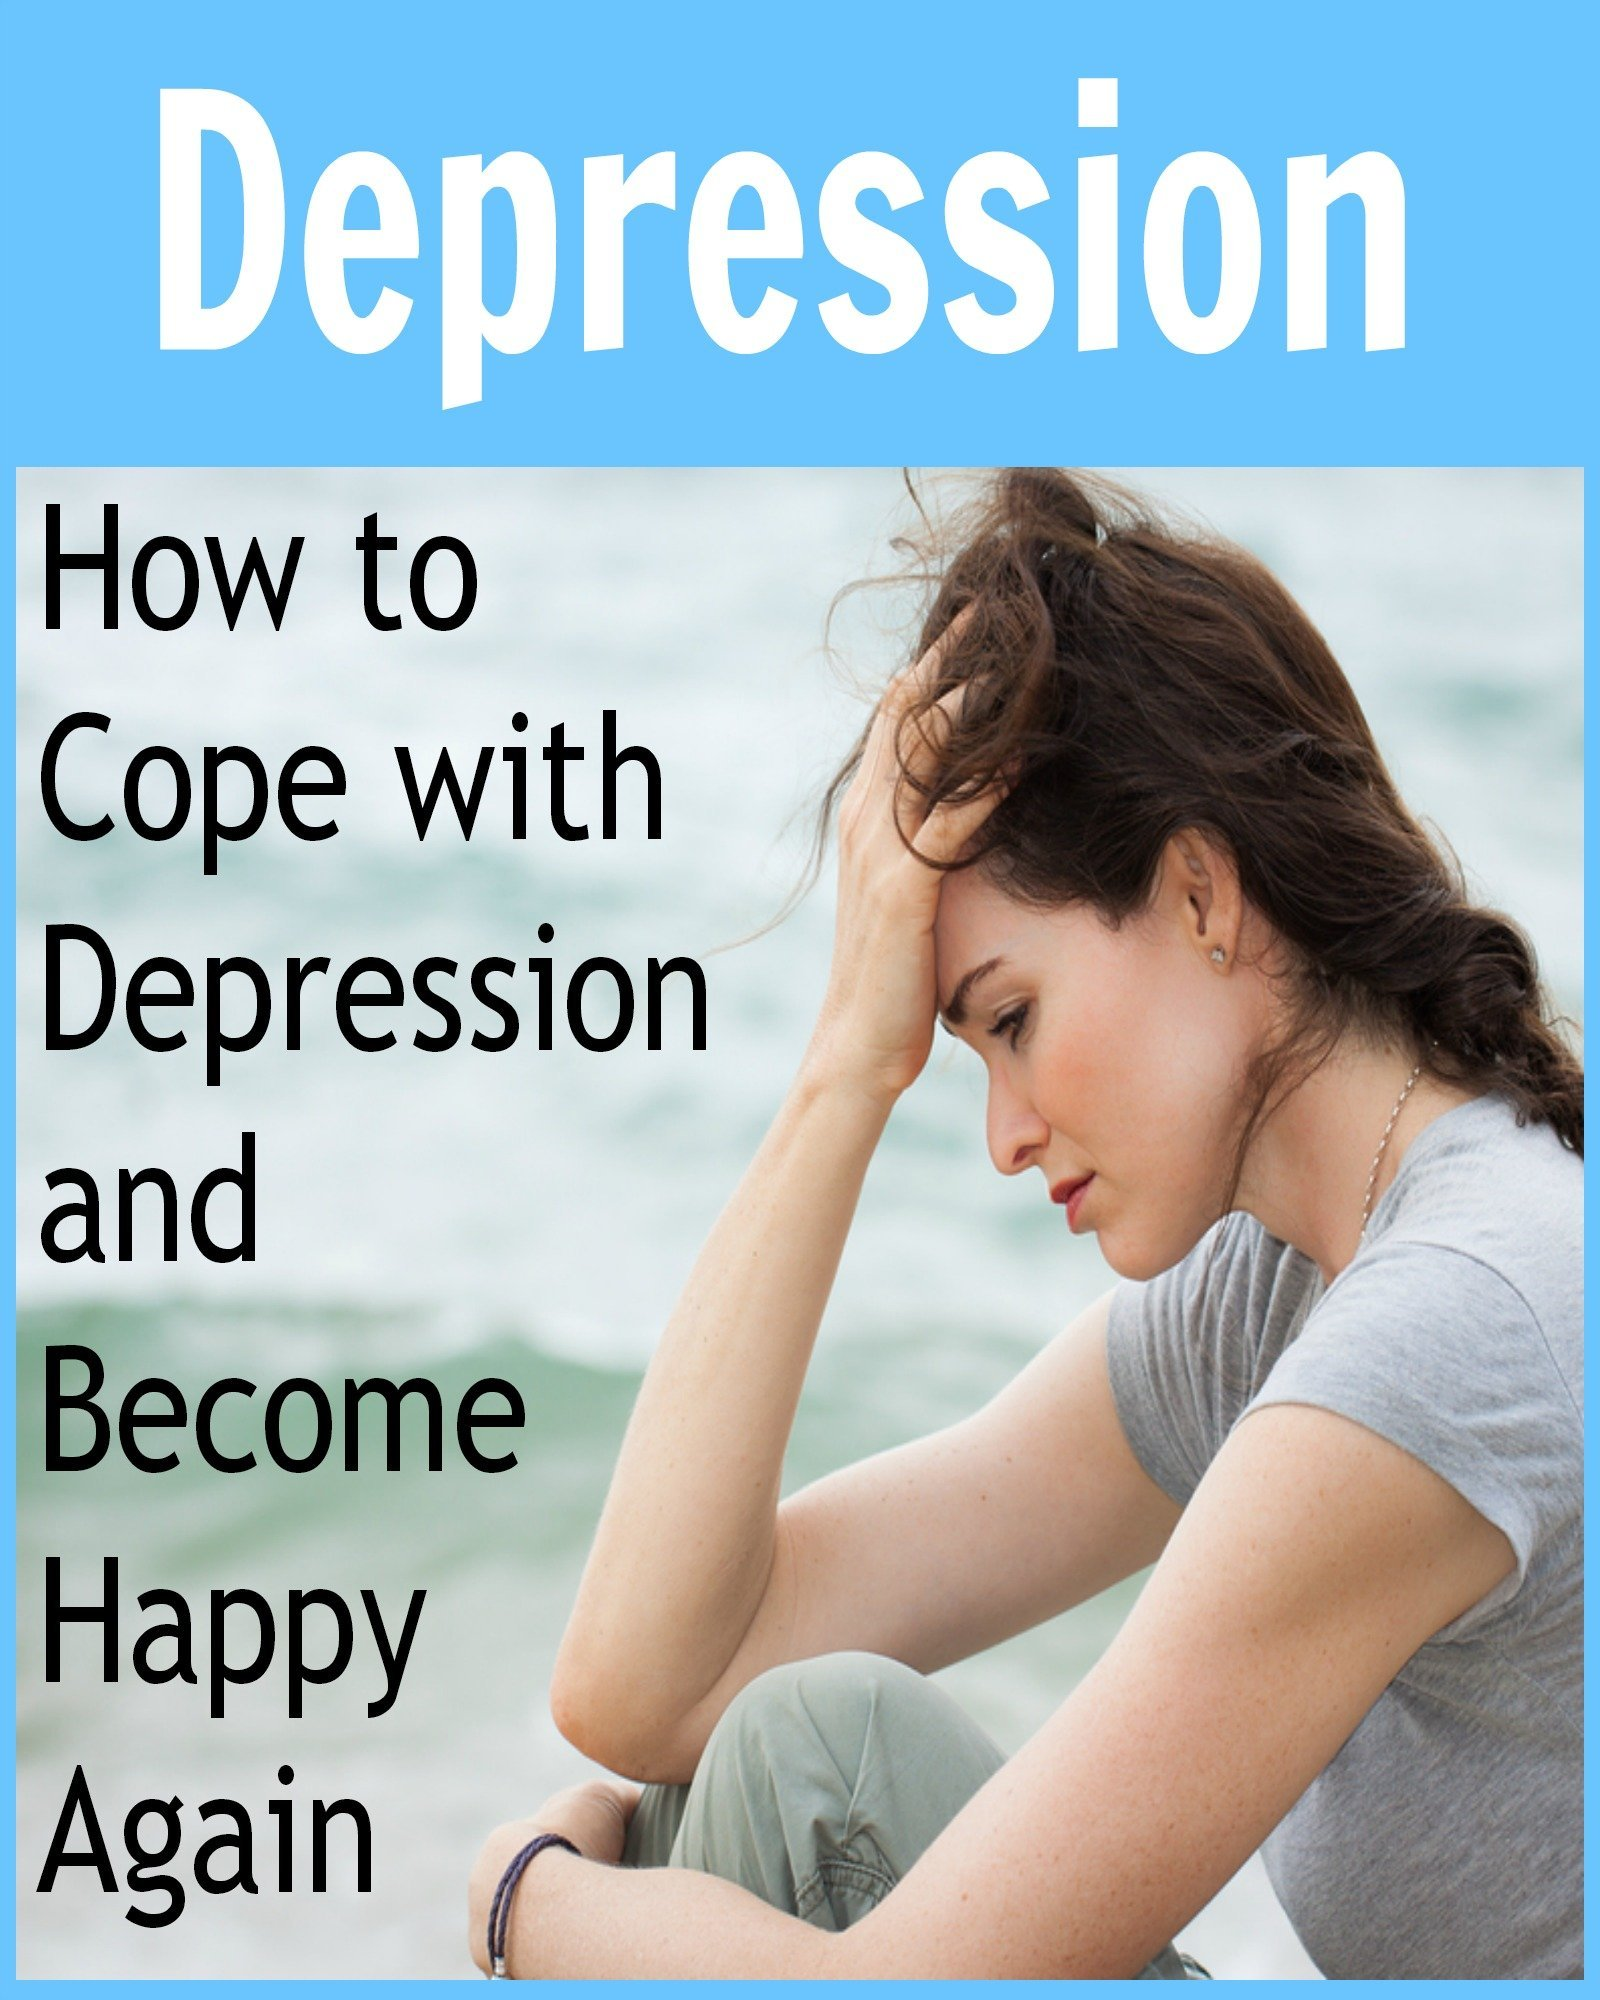 cancer and depression how to deal with the stress Stress, in everyday terms, is a feeling that people have when they are overloaded and struggling to cope with demands these demands can be related to finances, work, relationships, and other.